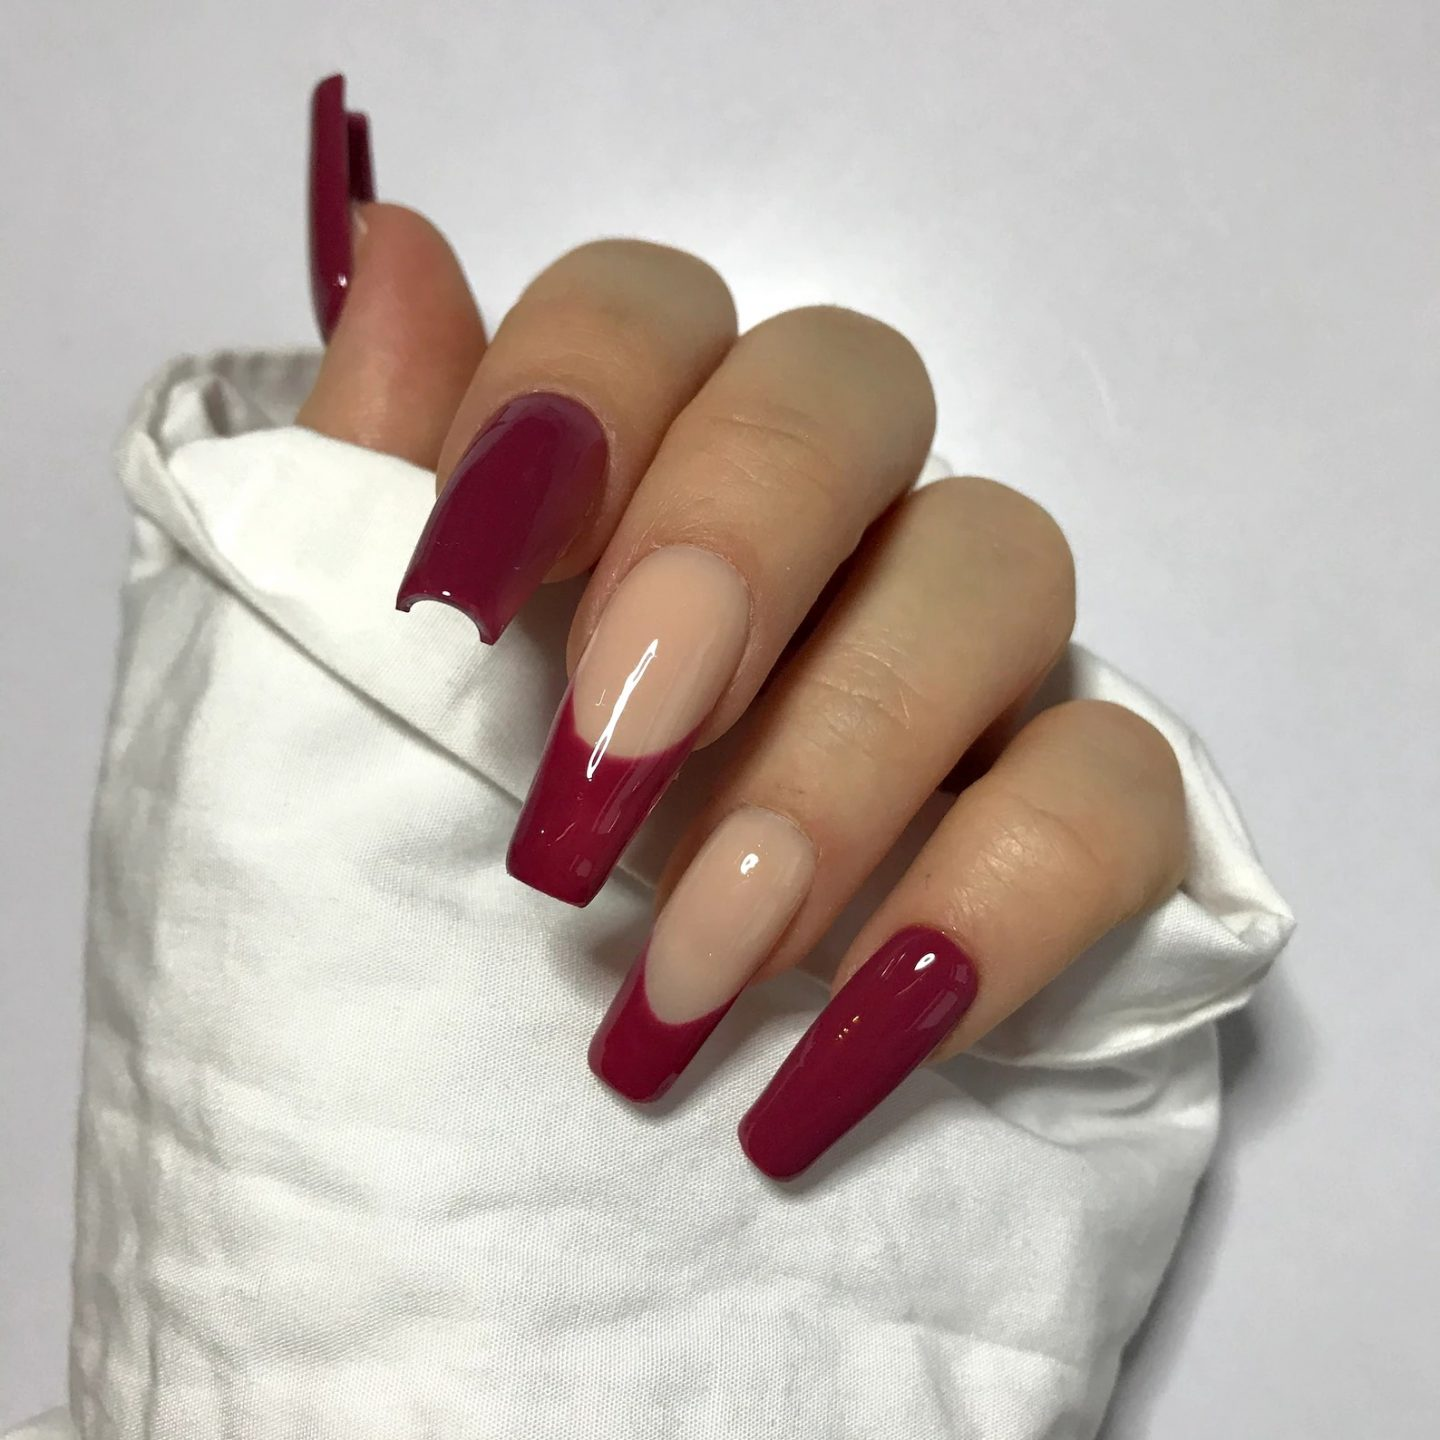 Cute burgundy nails with French tips